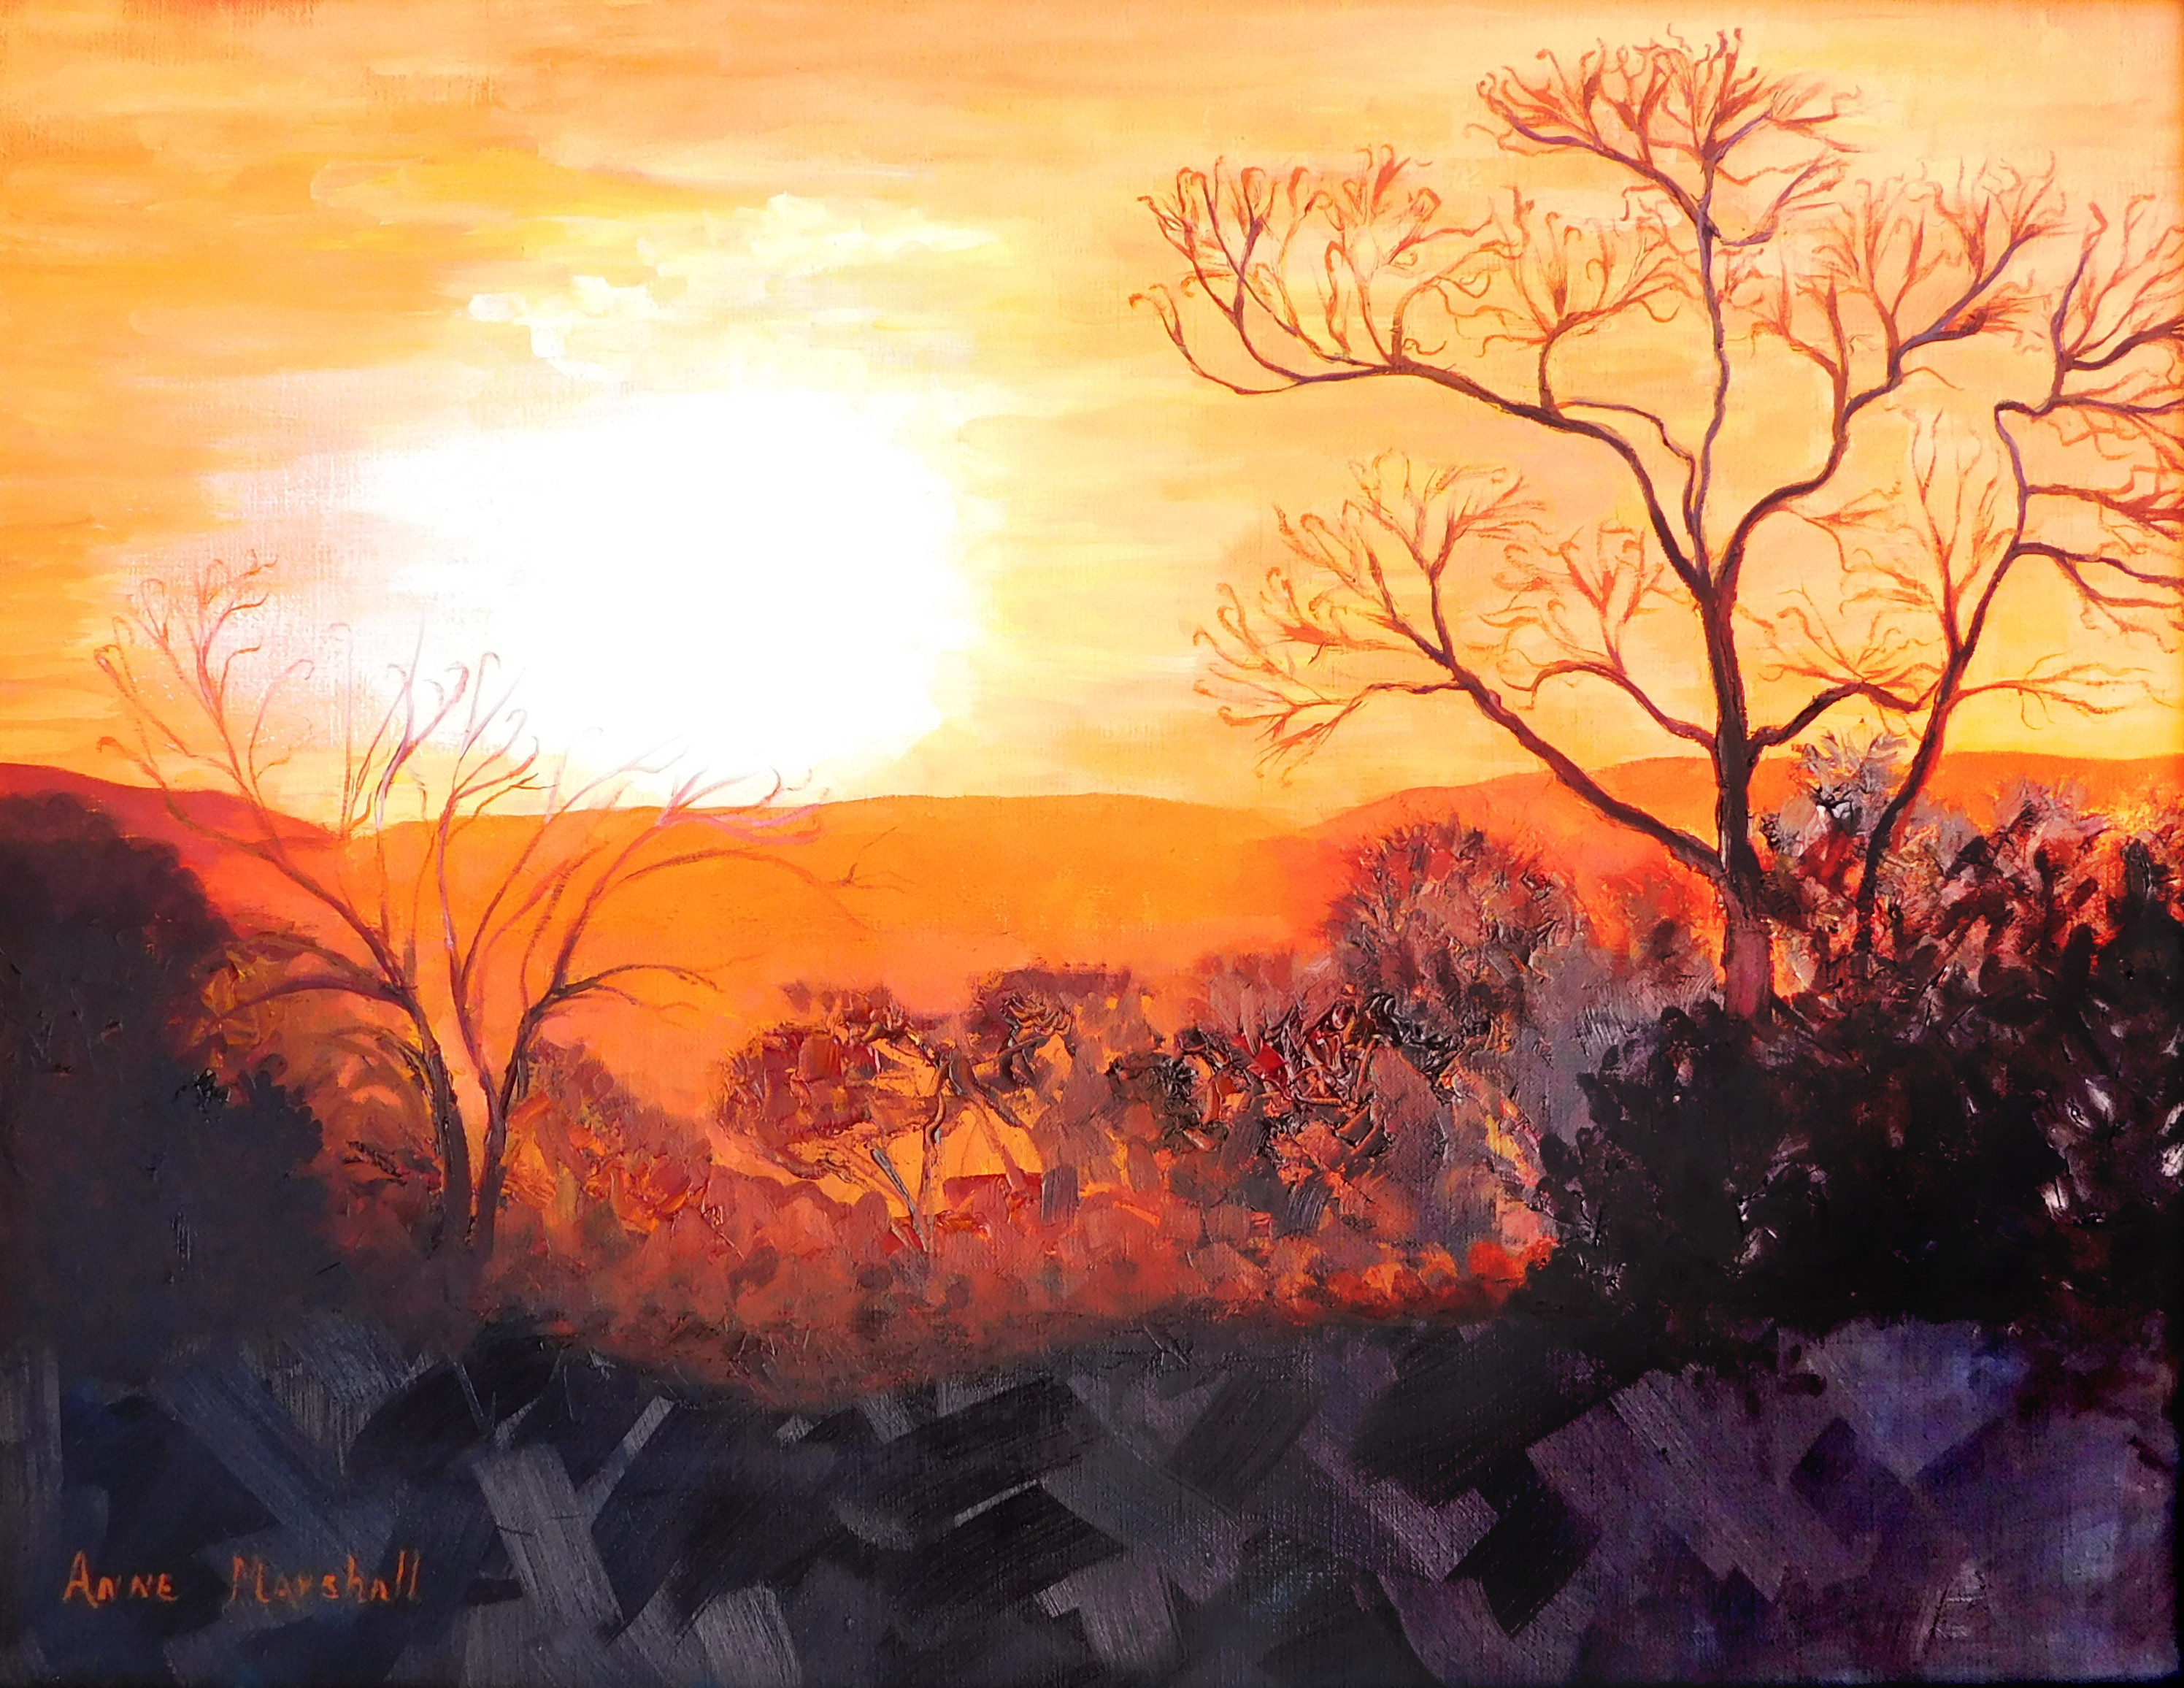 Block, Anne-Sunrise Loudoun